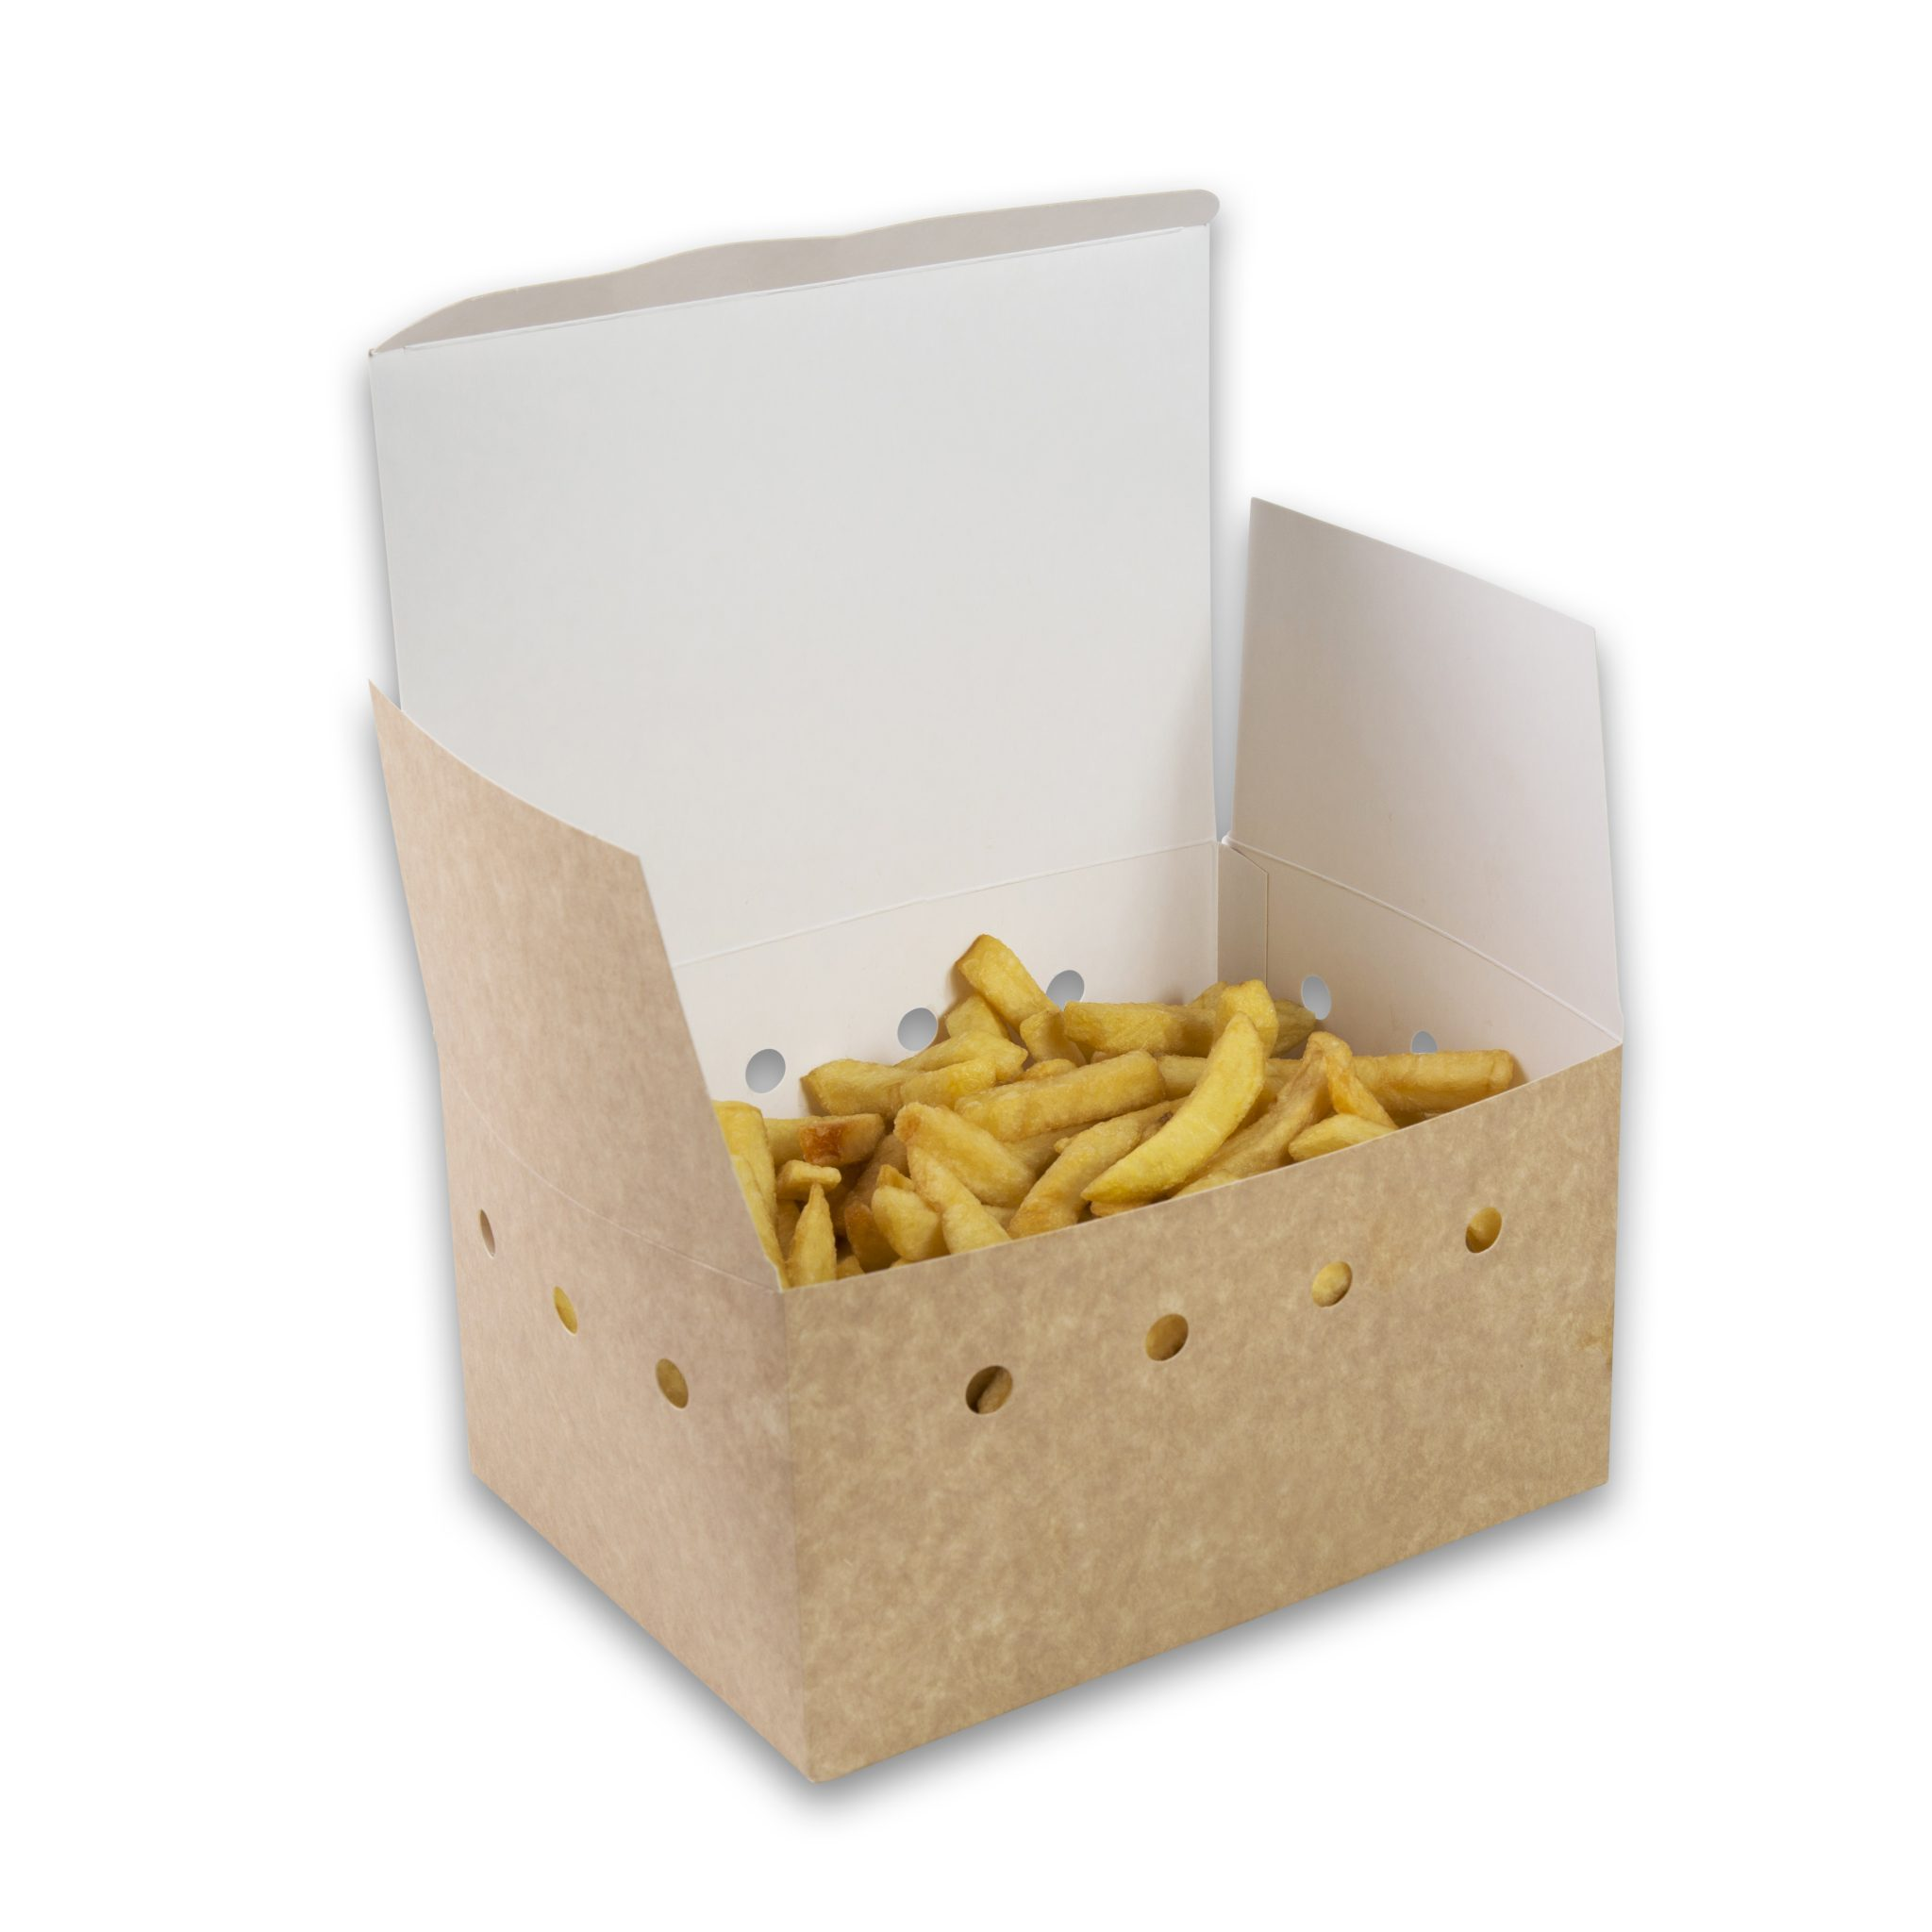 Kraf Karton snackbox, 190x140x100mm gezinsbox